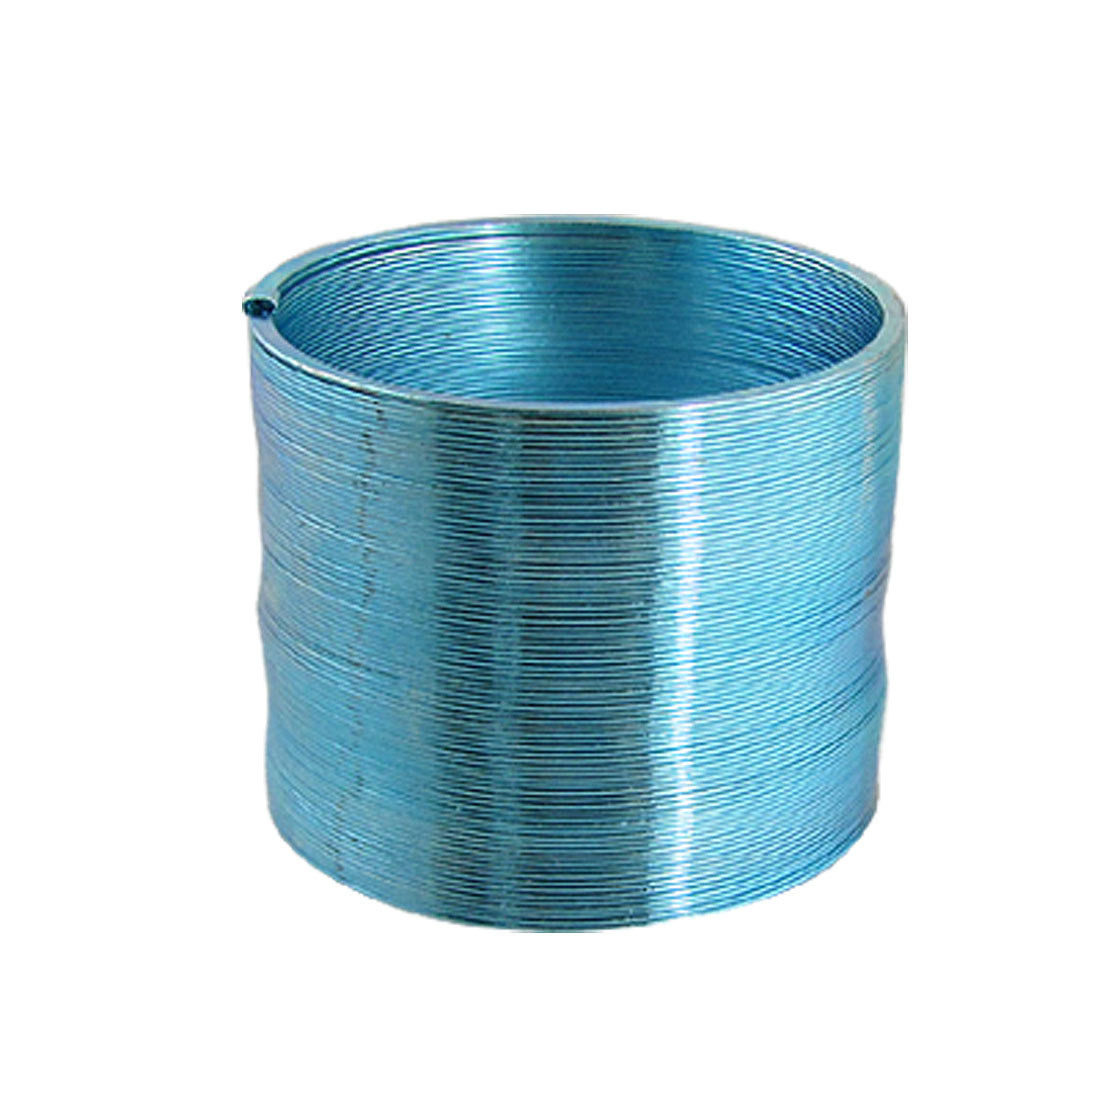 Shiny Blue Metal Round Slinky Magic Spring Classic Toy